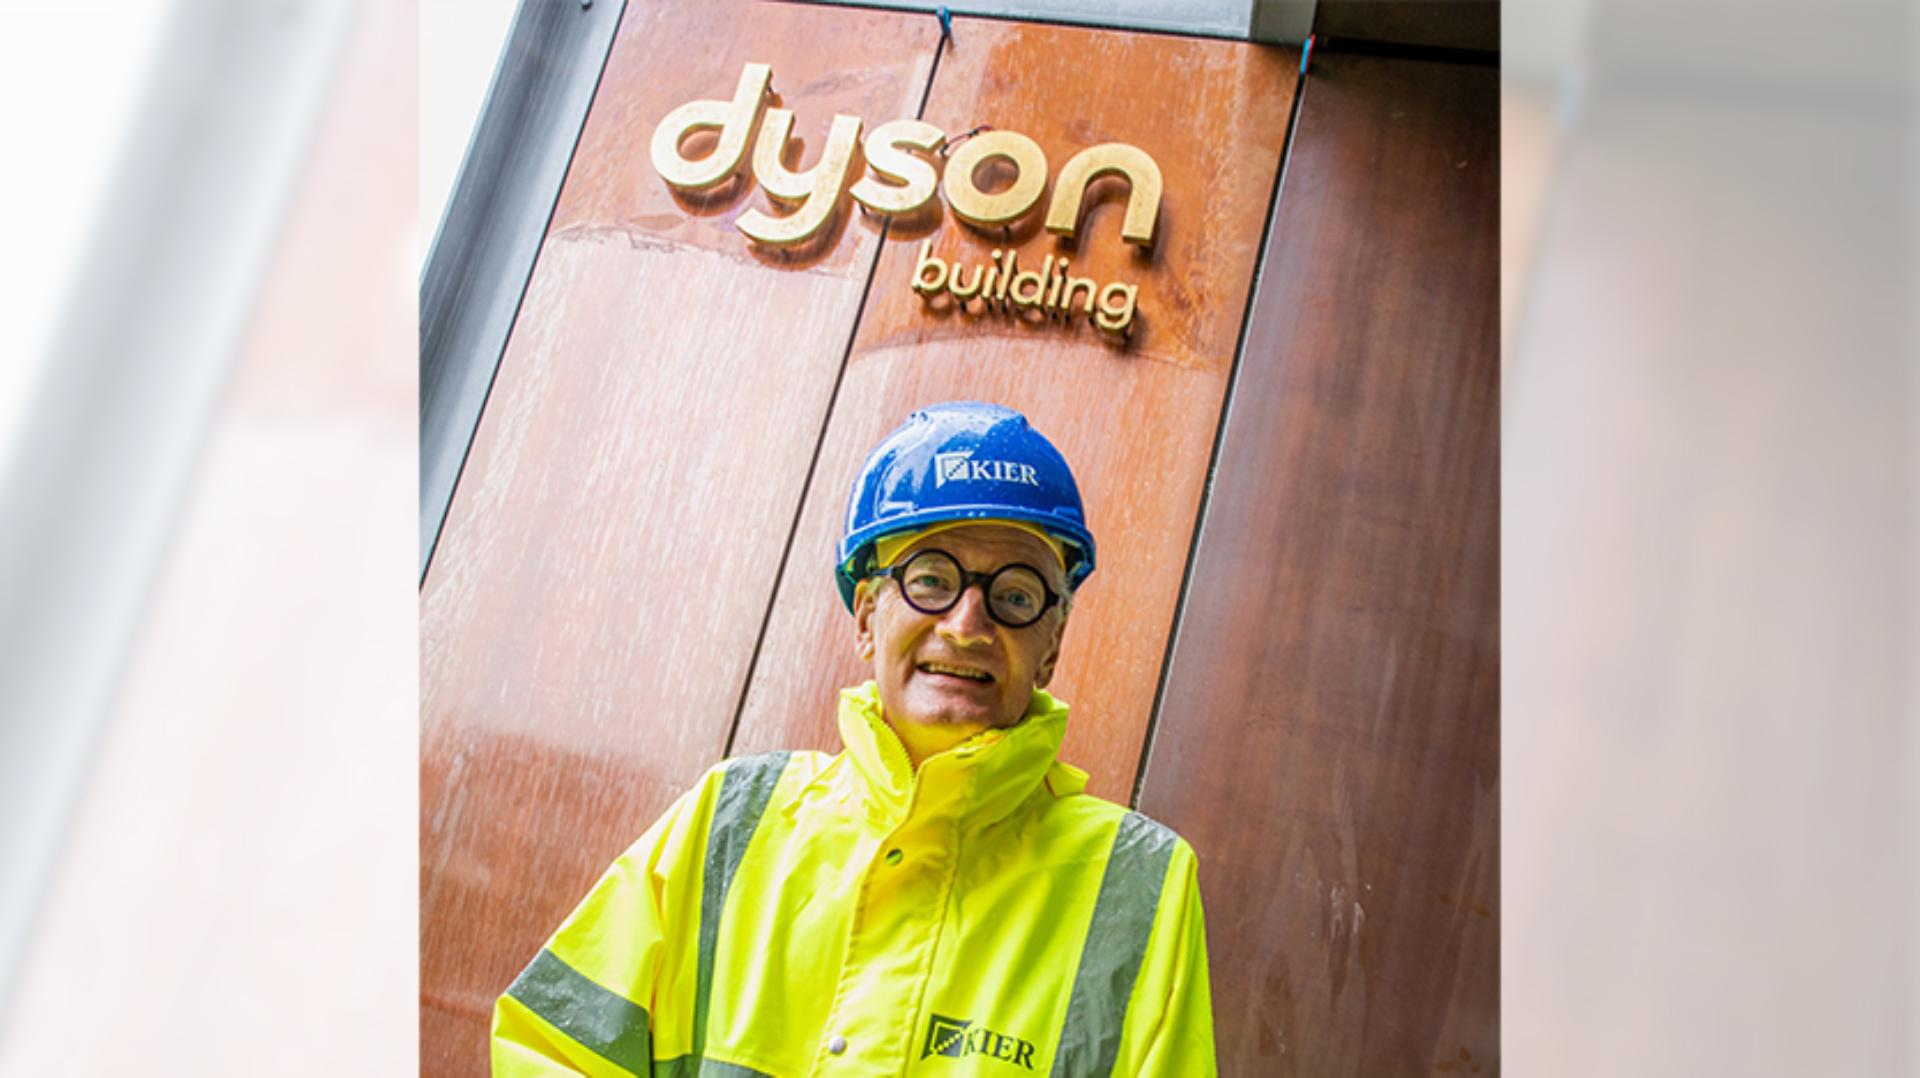 James Dyson standing in front of the Dyson building at Gresham school